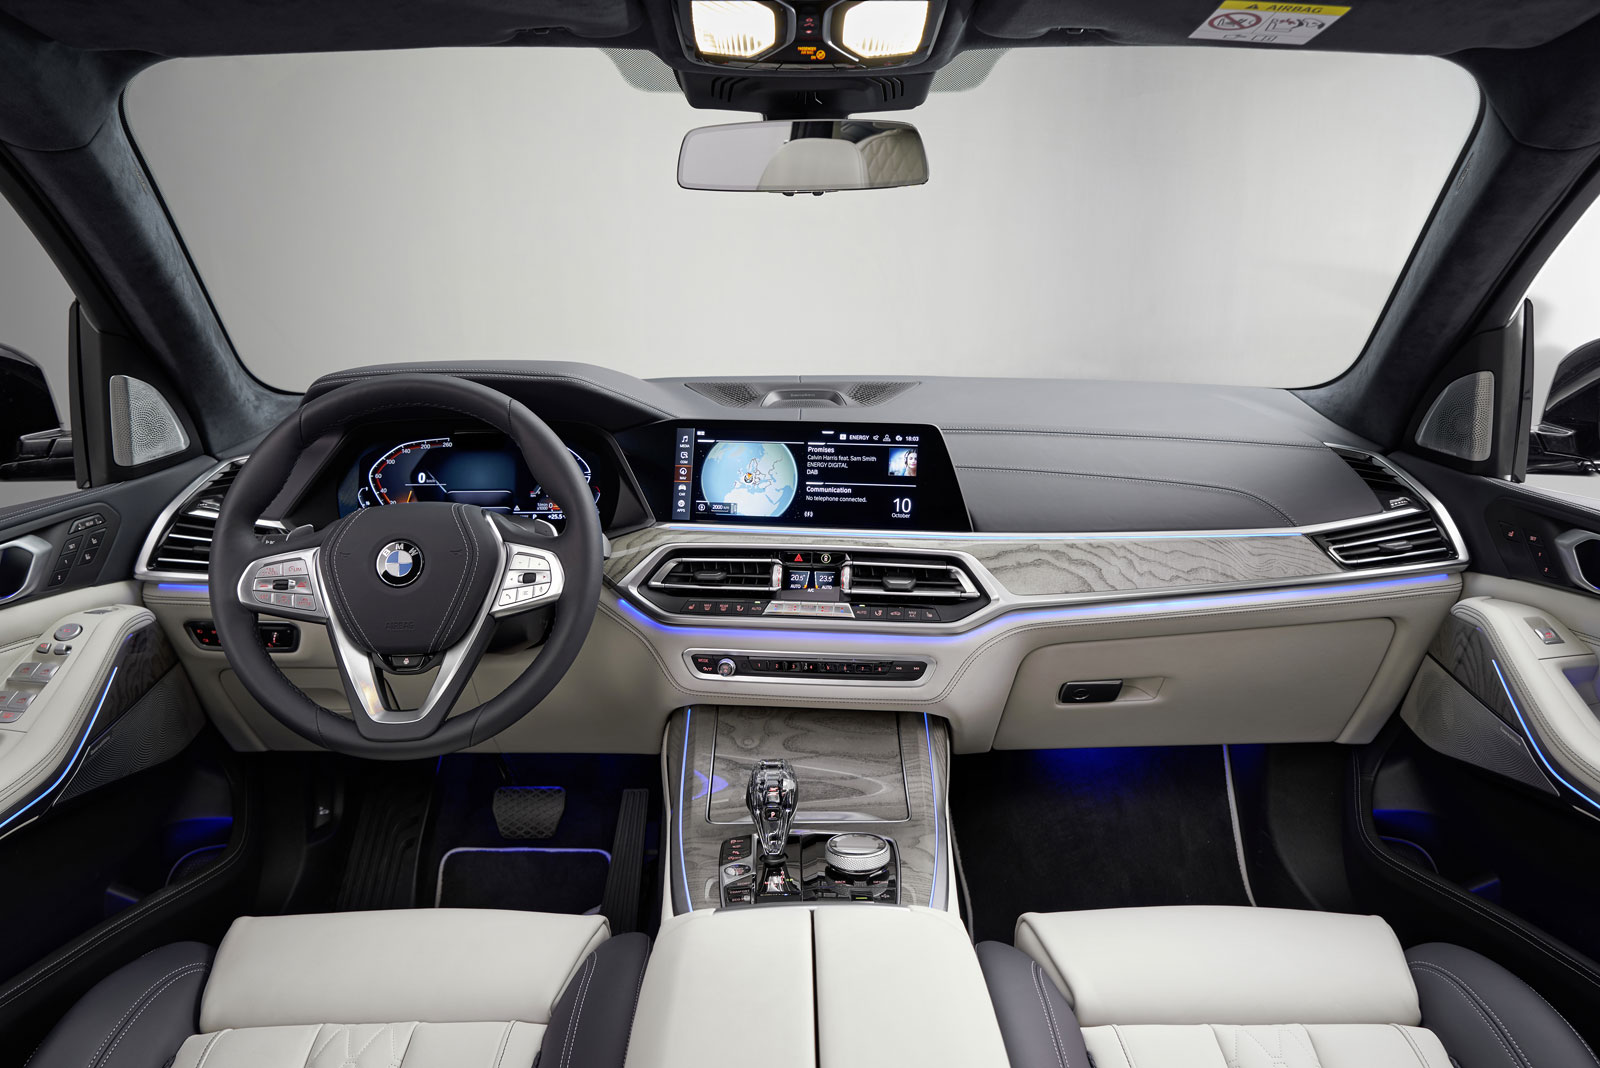 Bmw X7 Interior Car Body Design